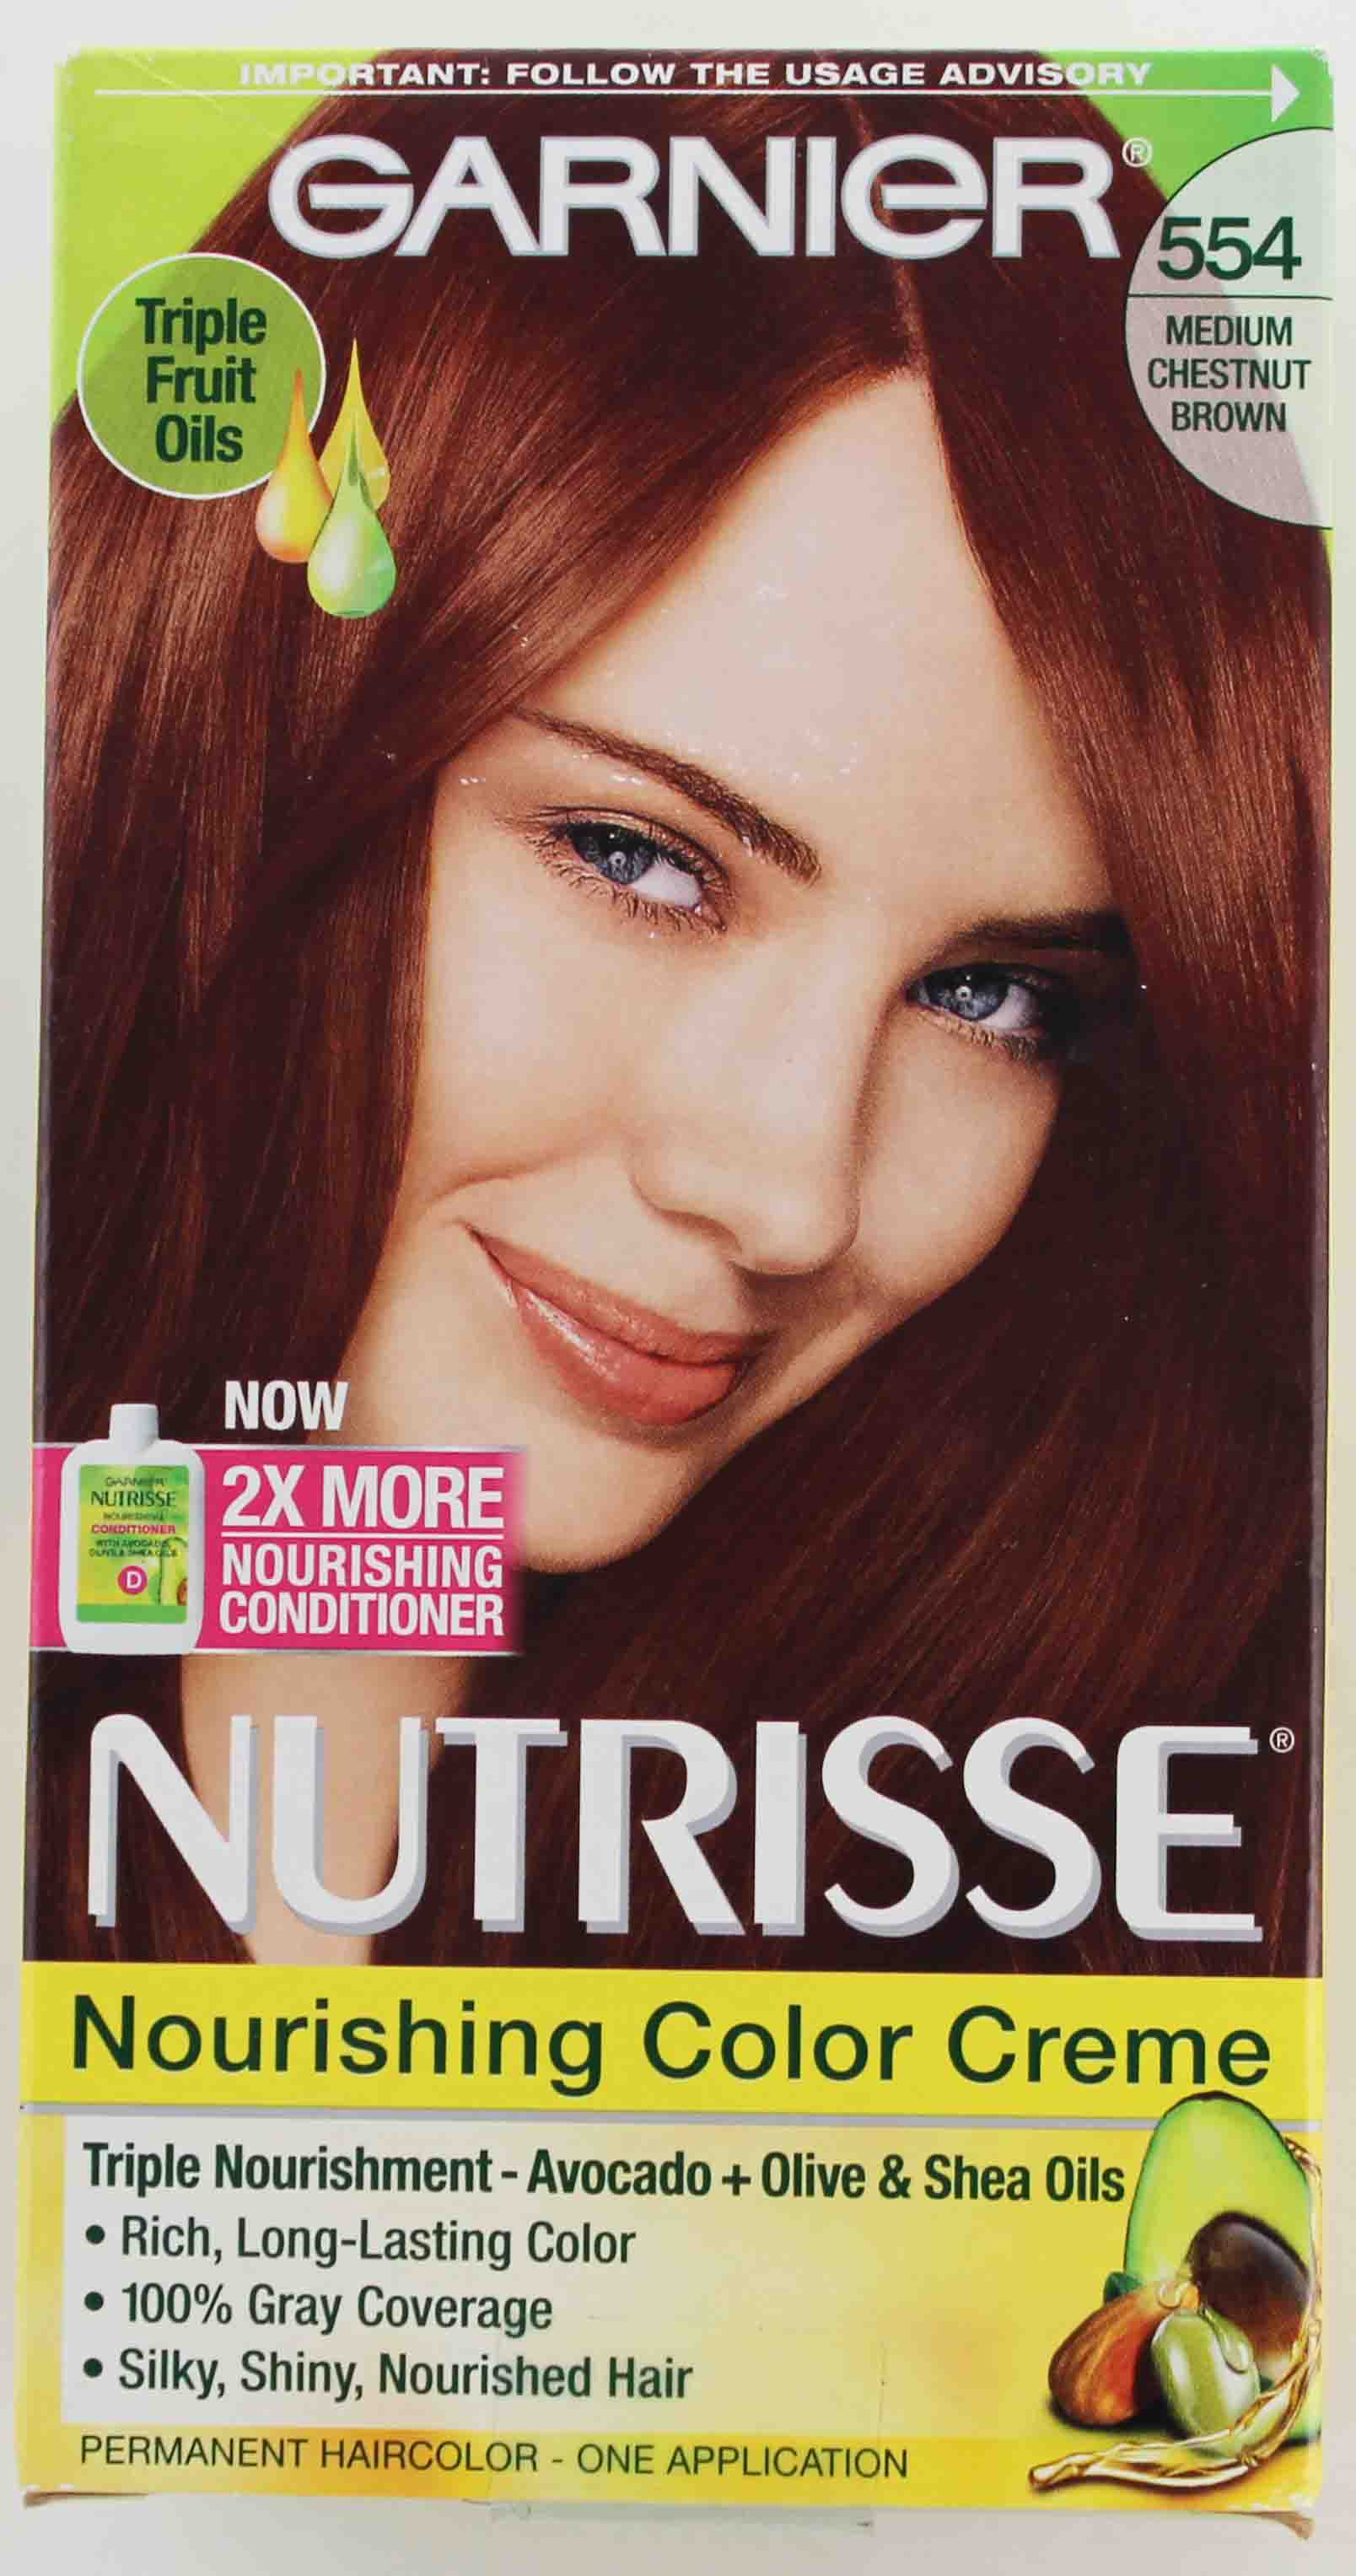 Garnier Nutrisse Nourishing Color Creme, 554 Medium Chestnut Brown